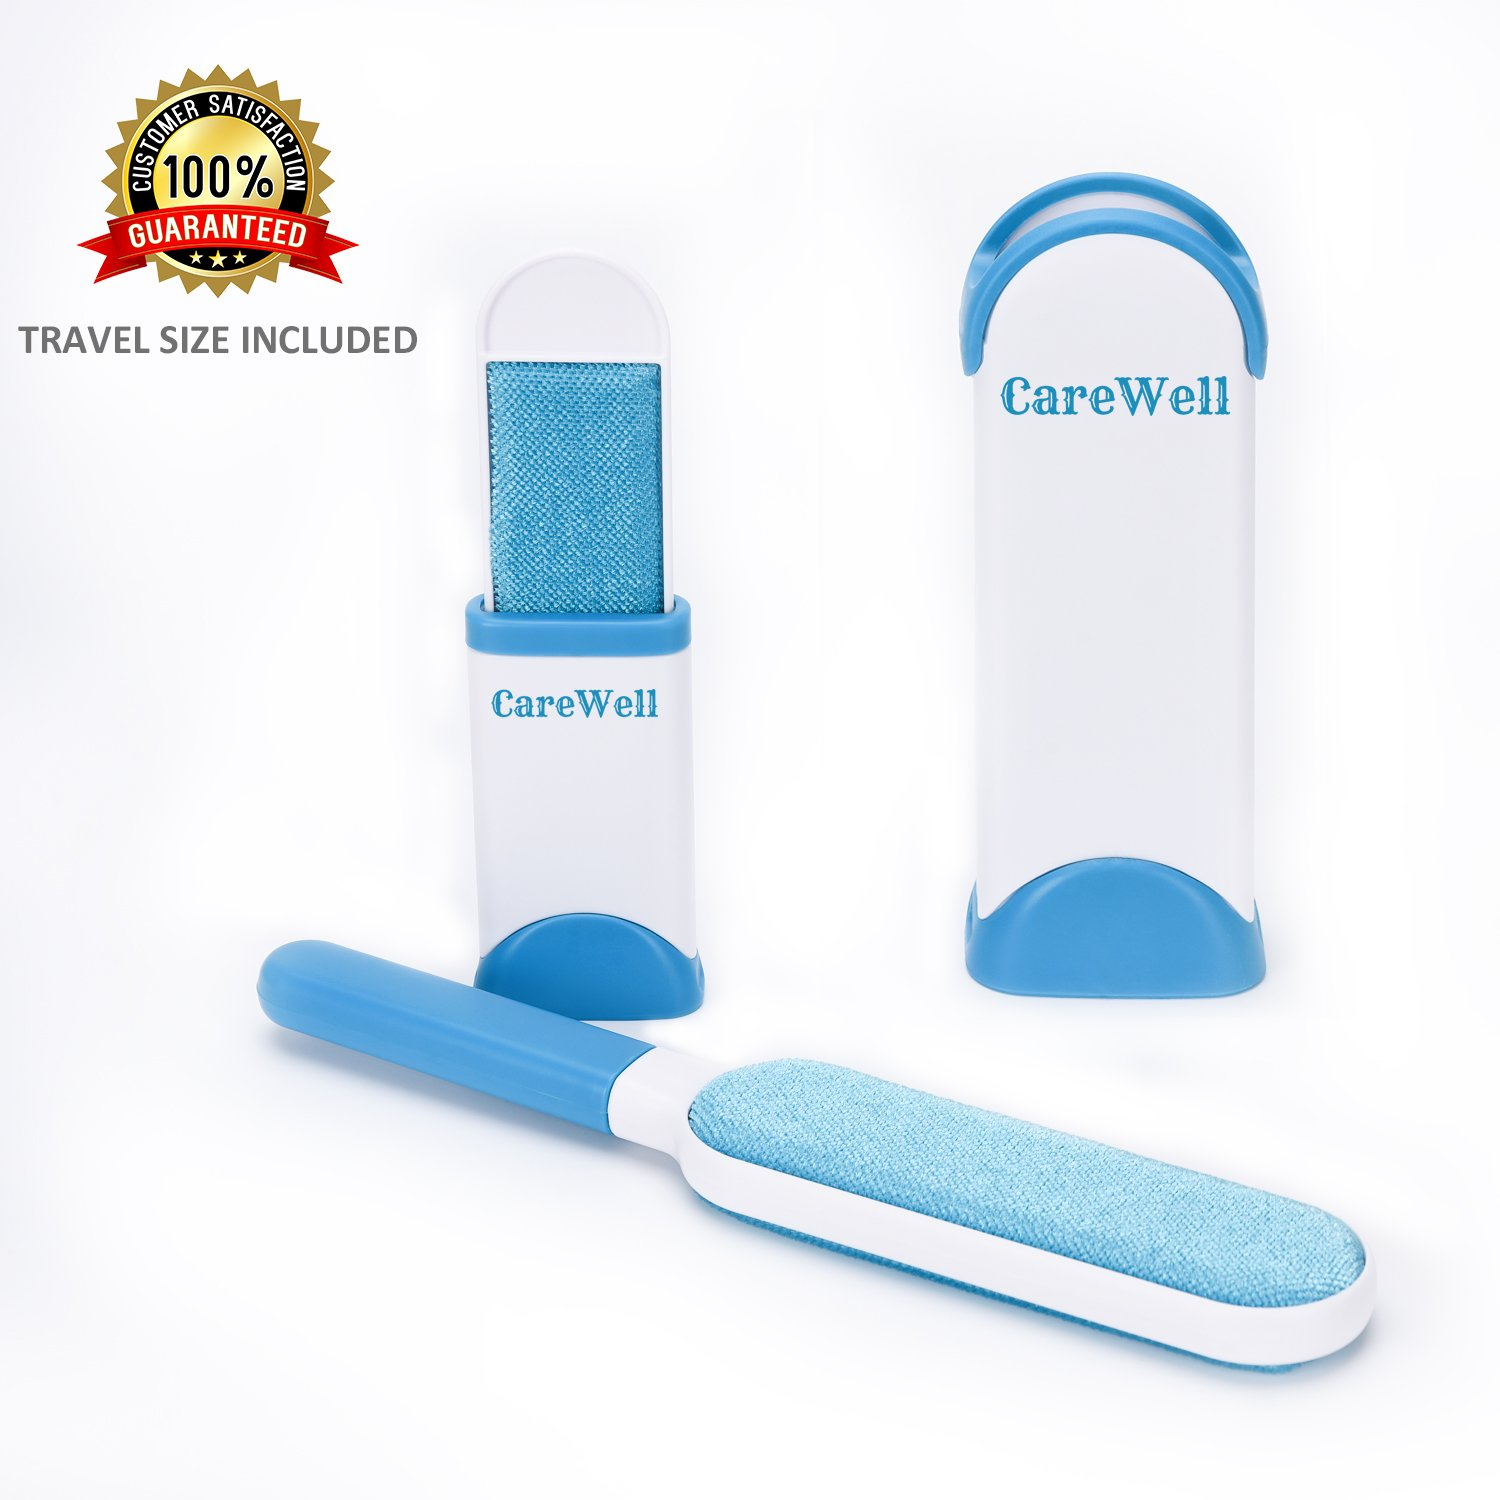 Fur Remover Pet Hair Remover with Self-Cleaning Base Lint Remover with Travel Size for Clothes, Beds, Furniture and Carpet